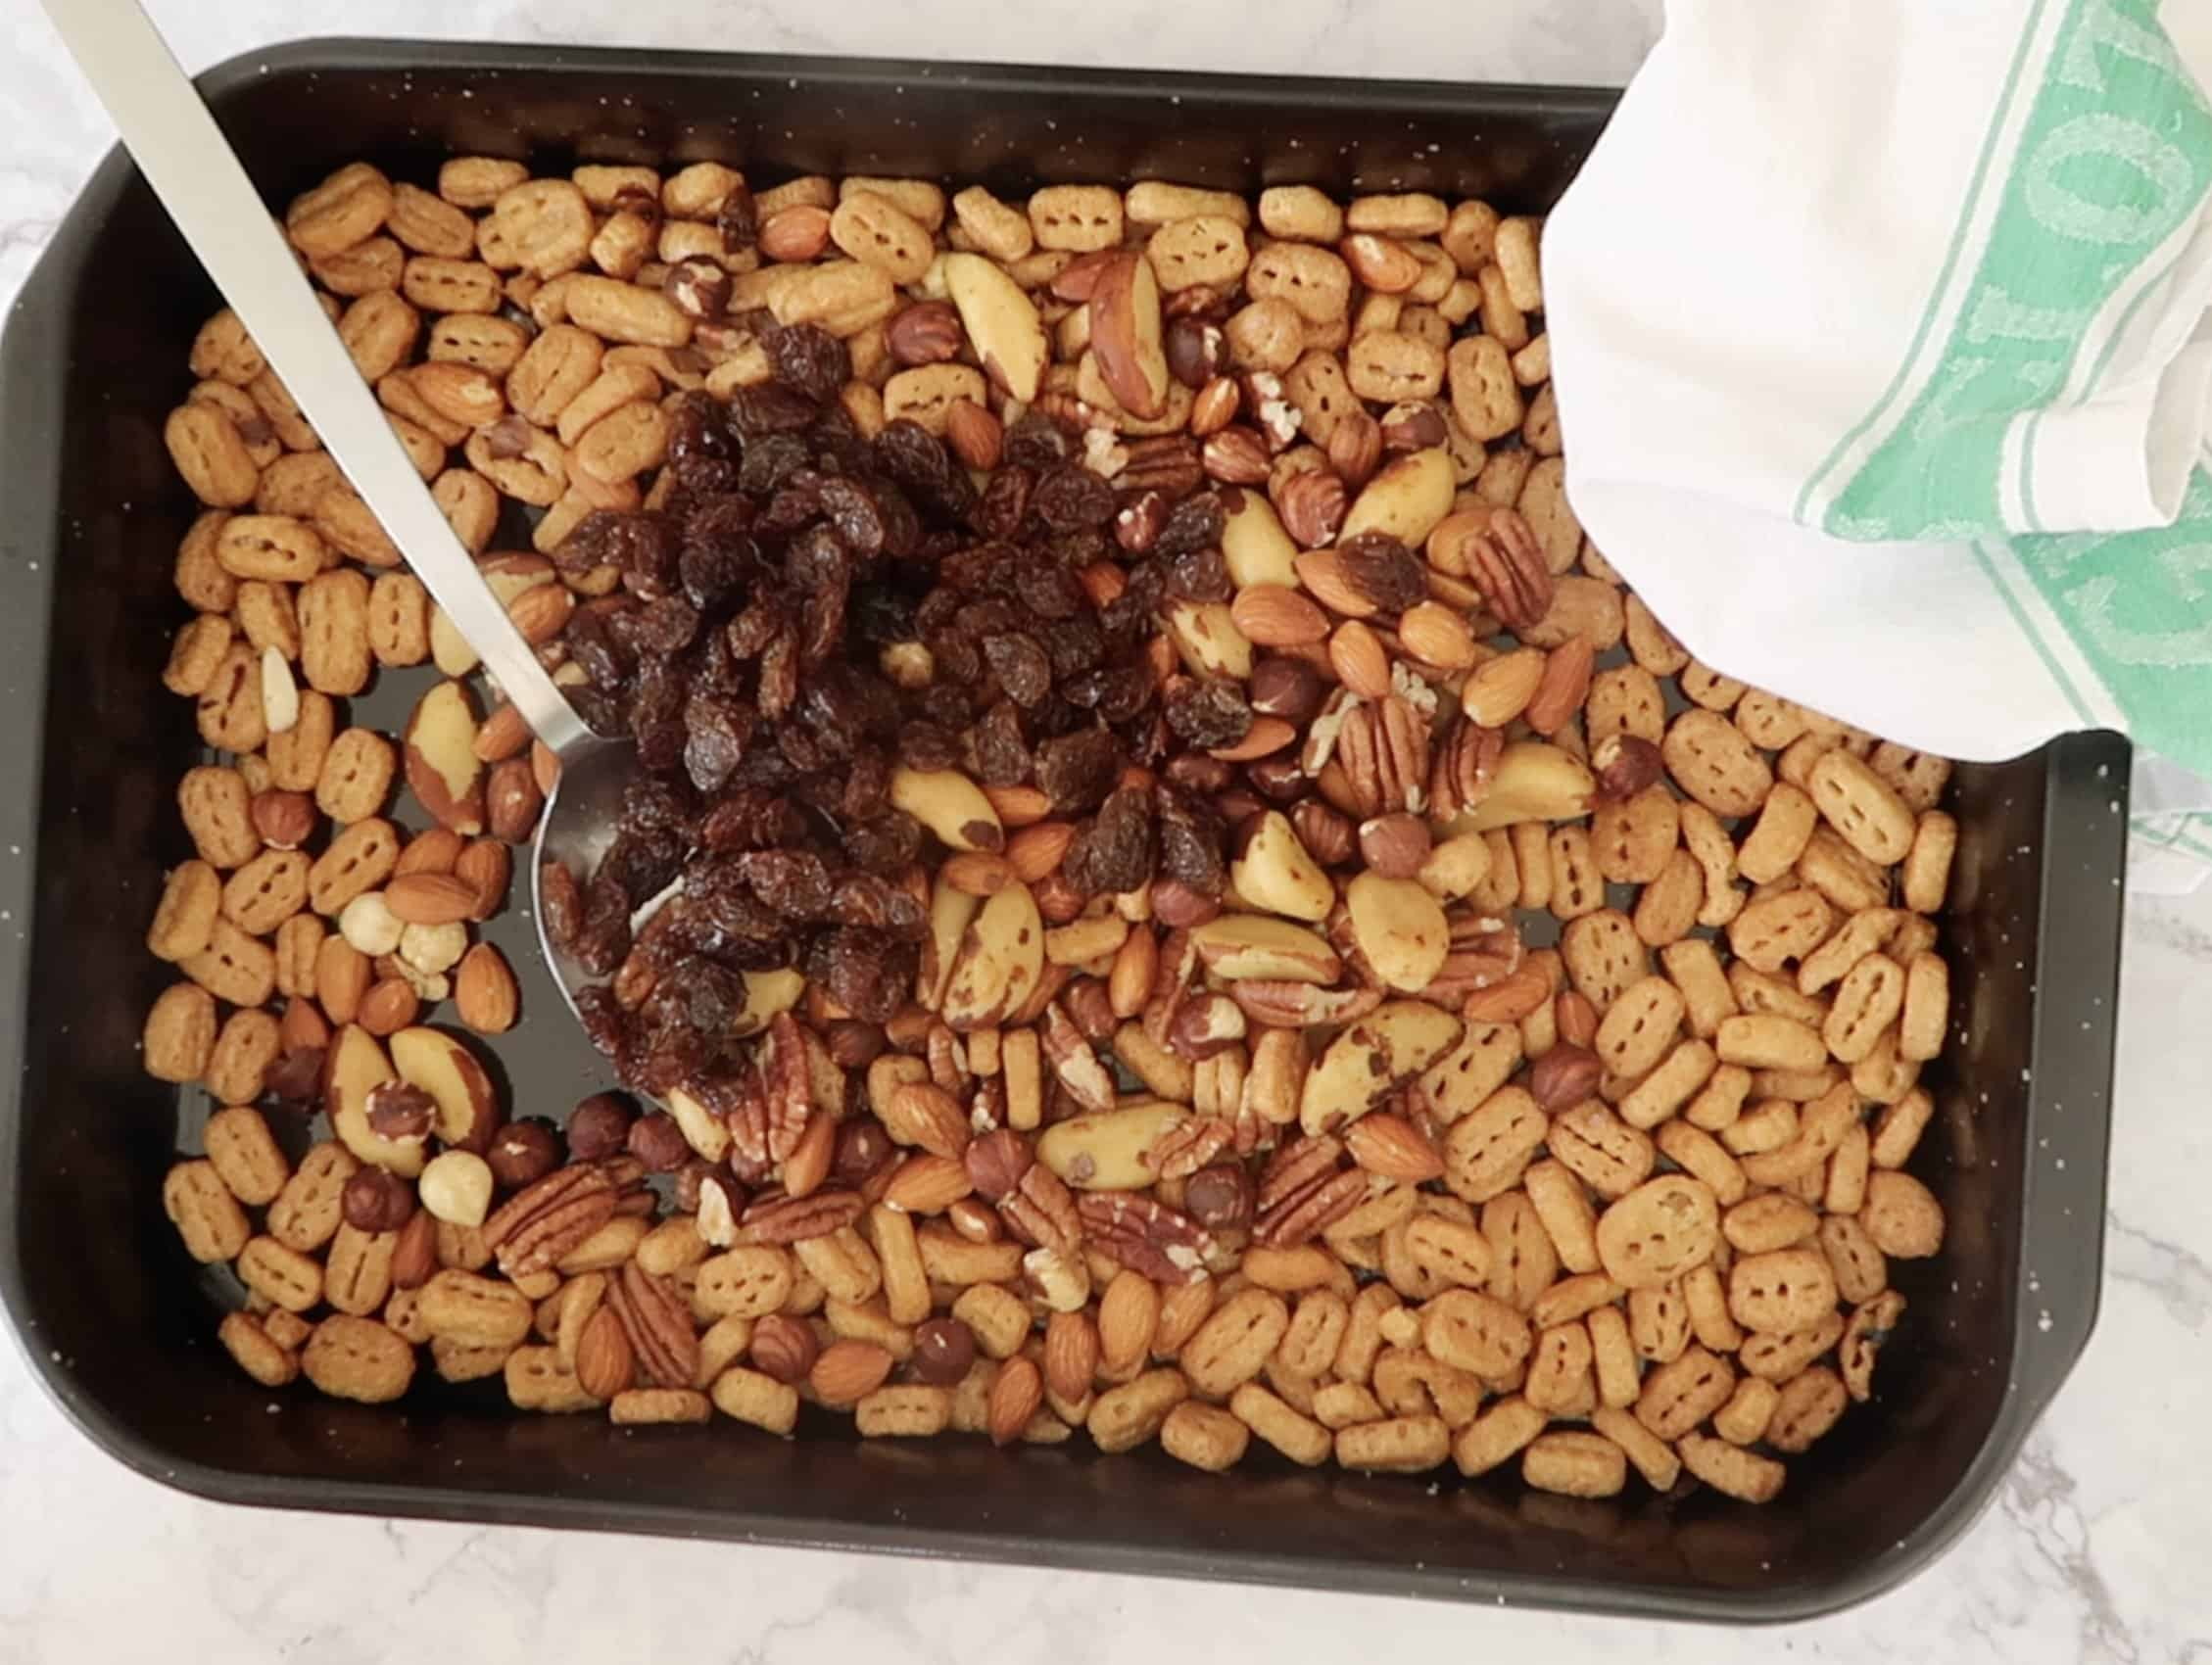 Nutty bolts on a baking dish of roasted Nutri Grain with a metal spoon and mixed nuts and raisins added to make nuts and bolts